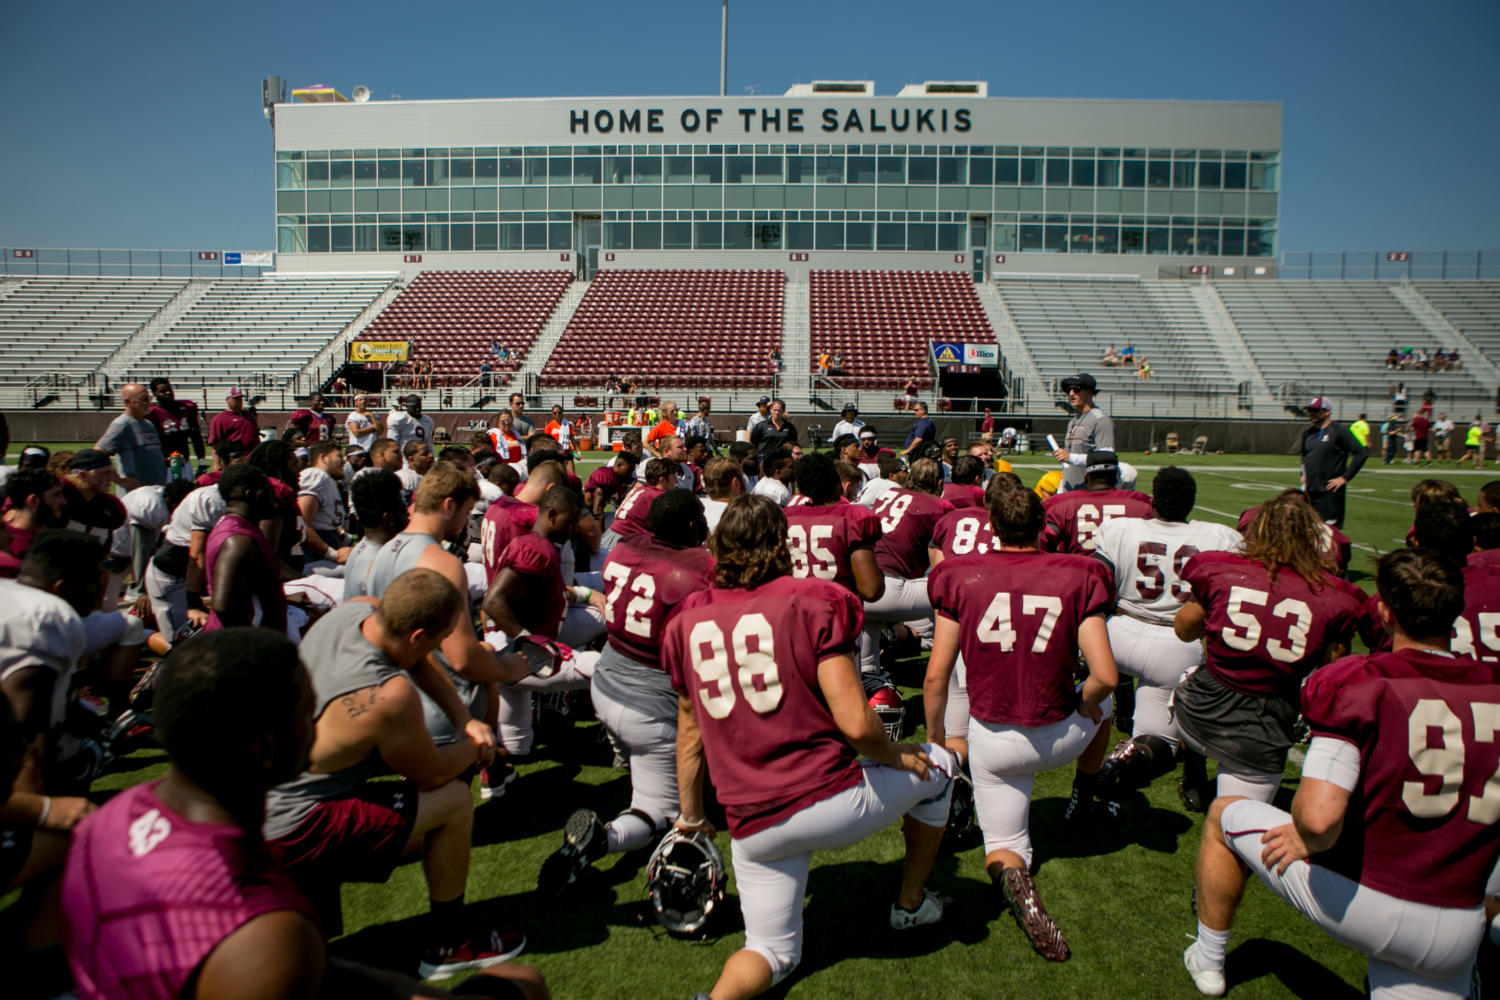 Coach+Nick+Hill+talks+to+members+of+the+Saluki+Football+team+Saturday%2C+Aug.+19%2C+2017%2C+after+the+second+scrimmage+of+the+season+at+Saluki+Stadium.+%28Brian+Mu%C3%B1oz+%7C+%40BrianMMunoz%29